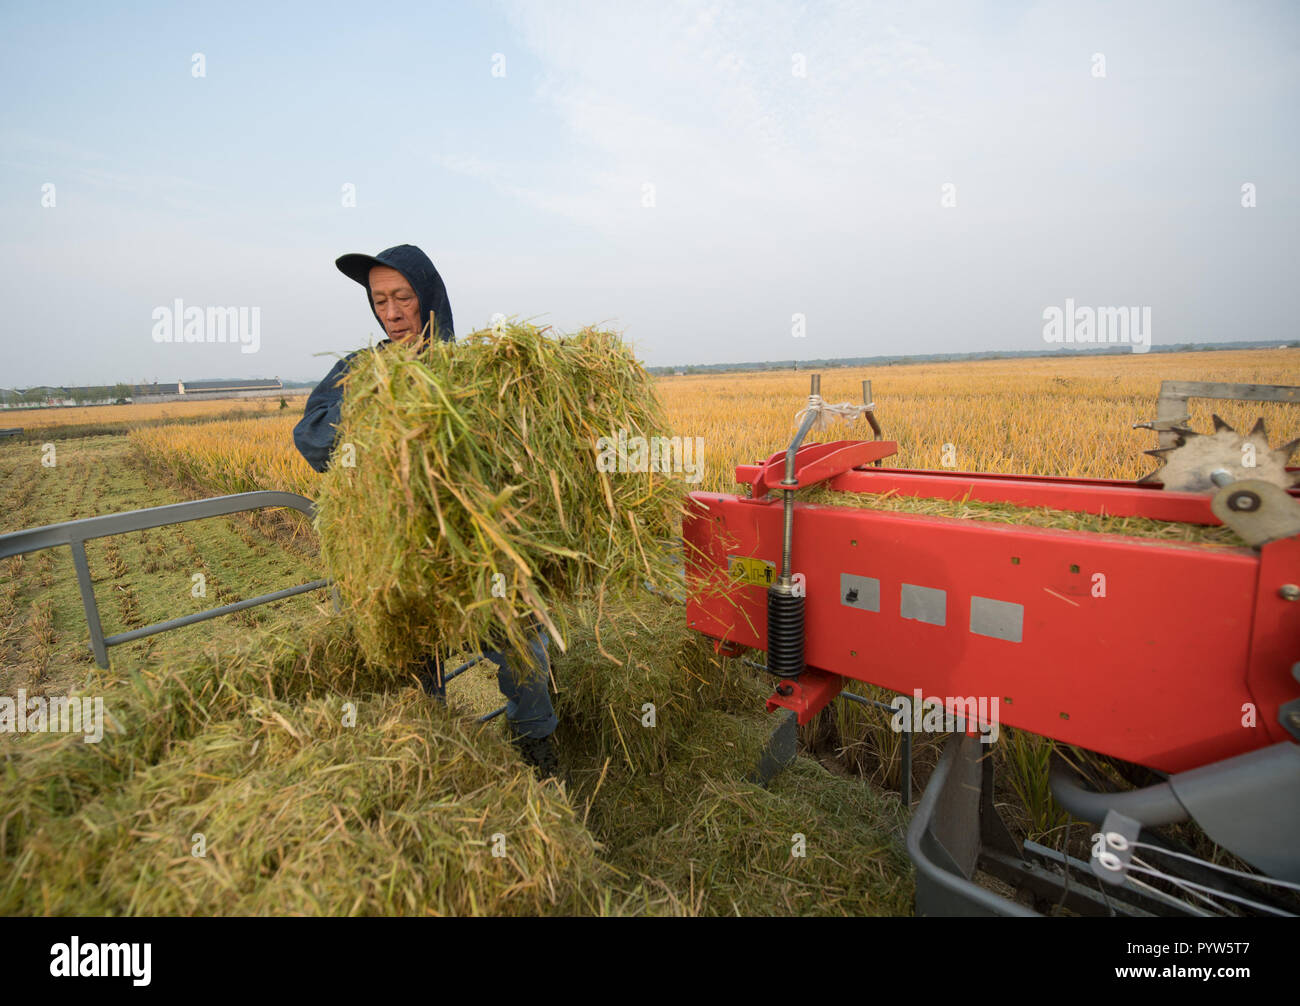 Huzhou, China's Zhejiang Province. 30th Oct, 2018. A rural cooperative staff member recycles rice straw as fodder for sheep in a field at Qianshanxia Village in Wuxing District of Huzhou City, east China's Zhejiang Province, on Oct. 30, 2018. Since 2016, the cooperative has explored to develop recycling agriculture by organically incorporating rice planting with sheep breeding. Credit: Weng Xinyang/Xinhua/Alamy Live News - Stock Image